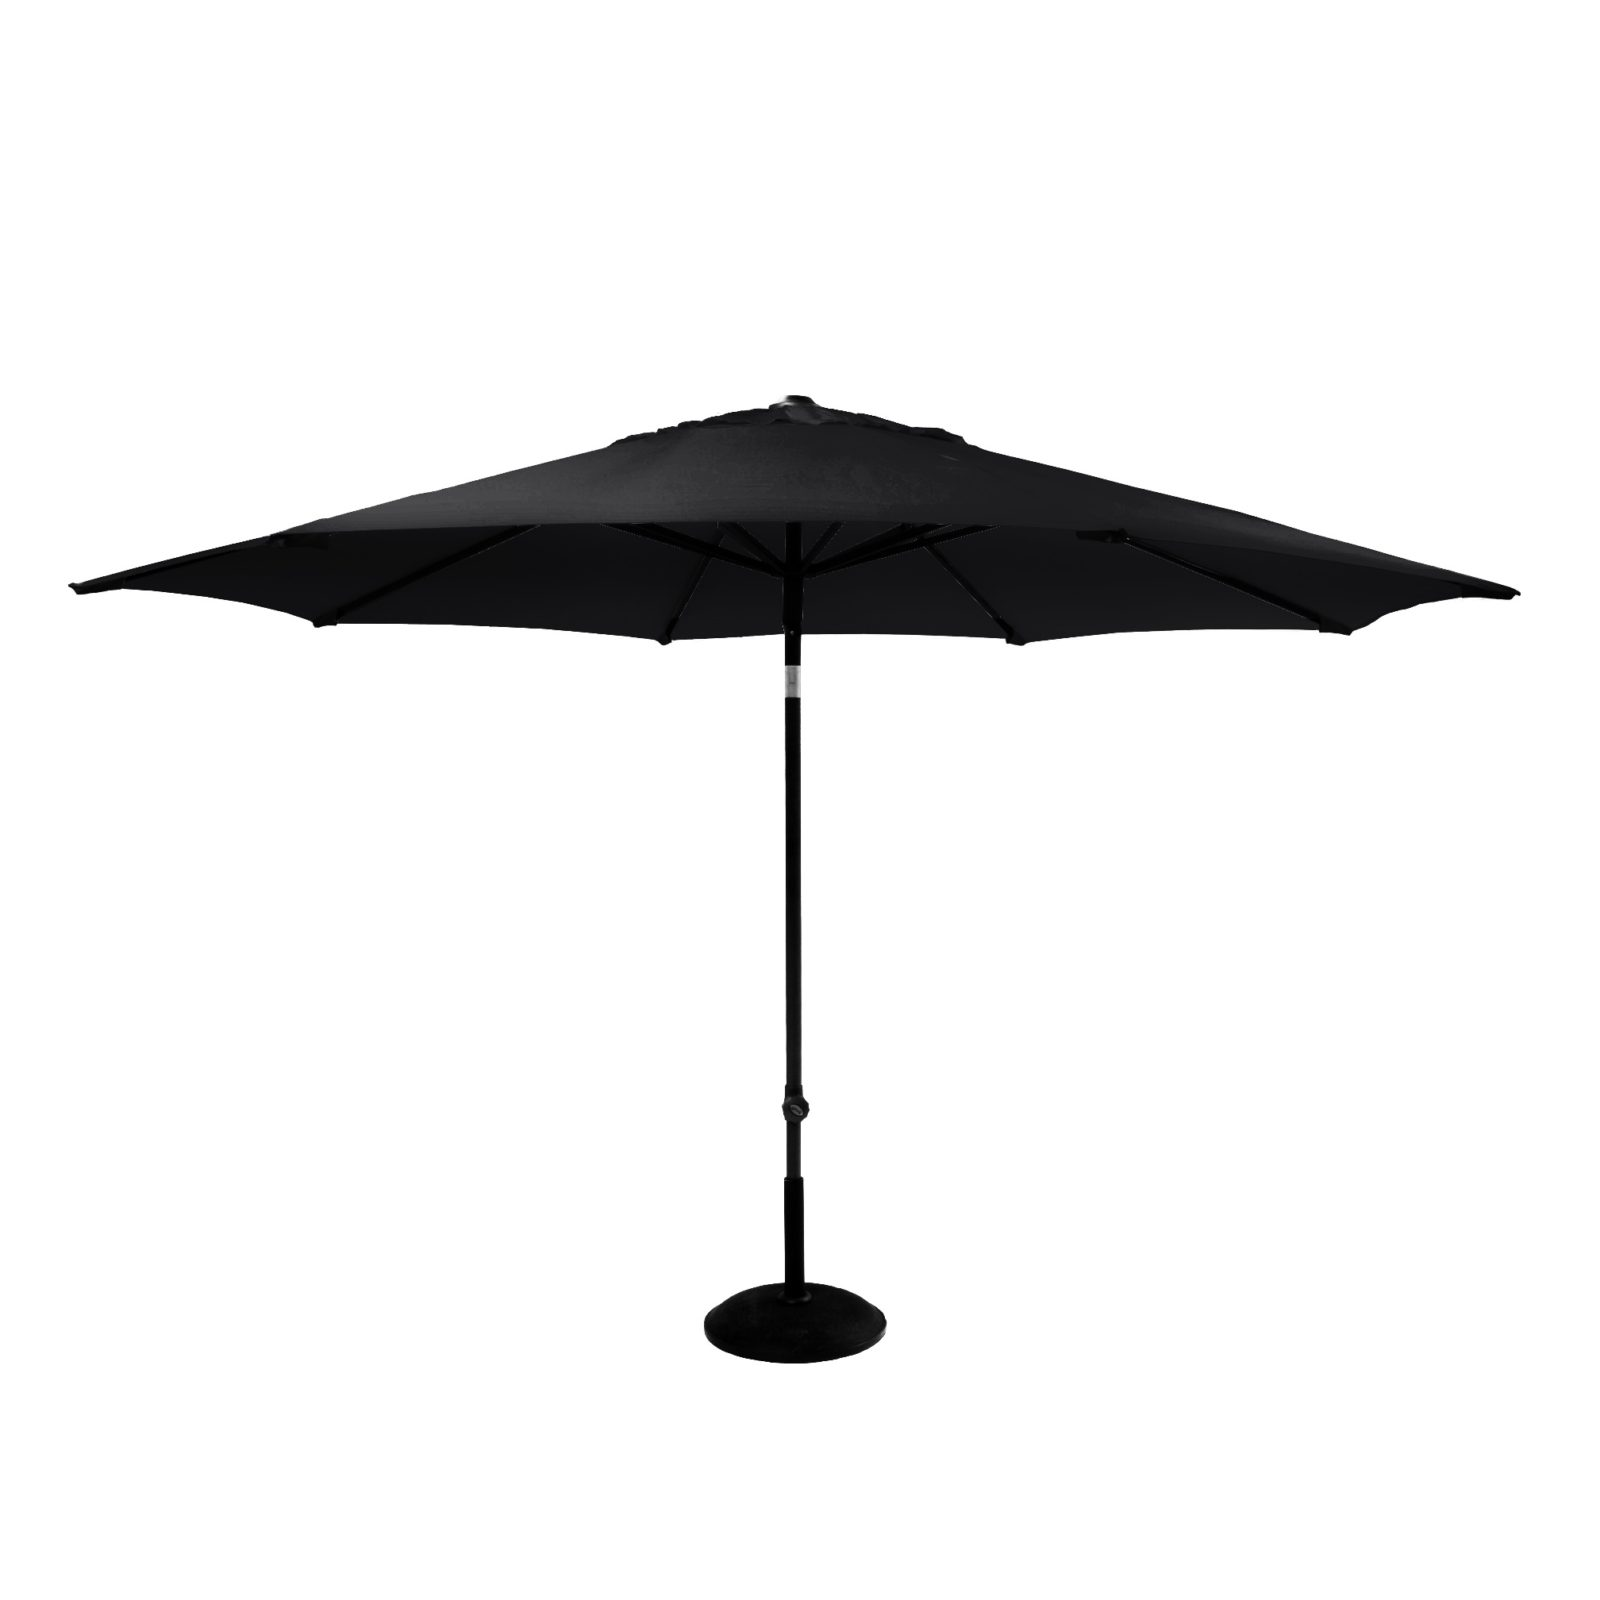 Parasol solarline 300 cm UPF50+ sort dug 14165008